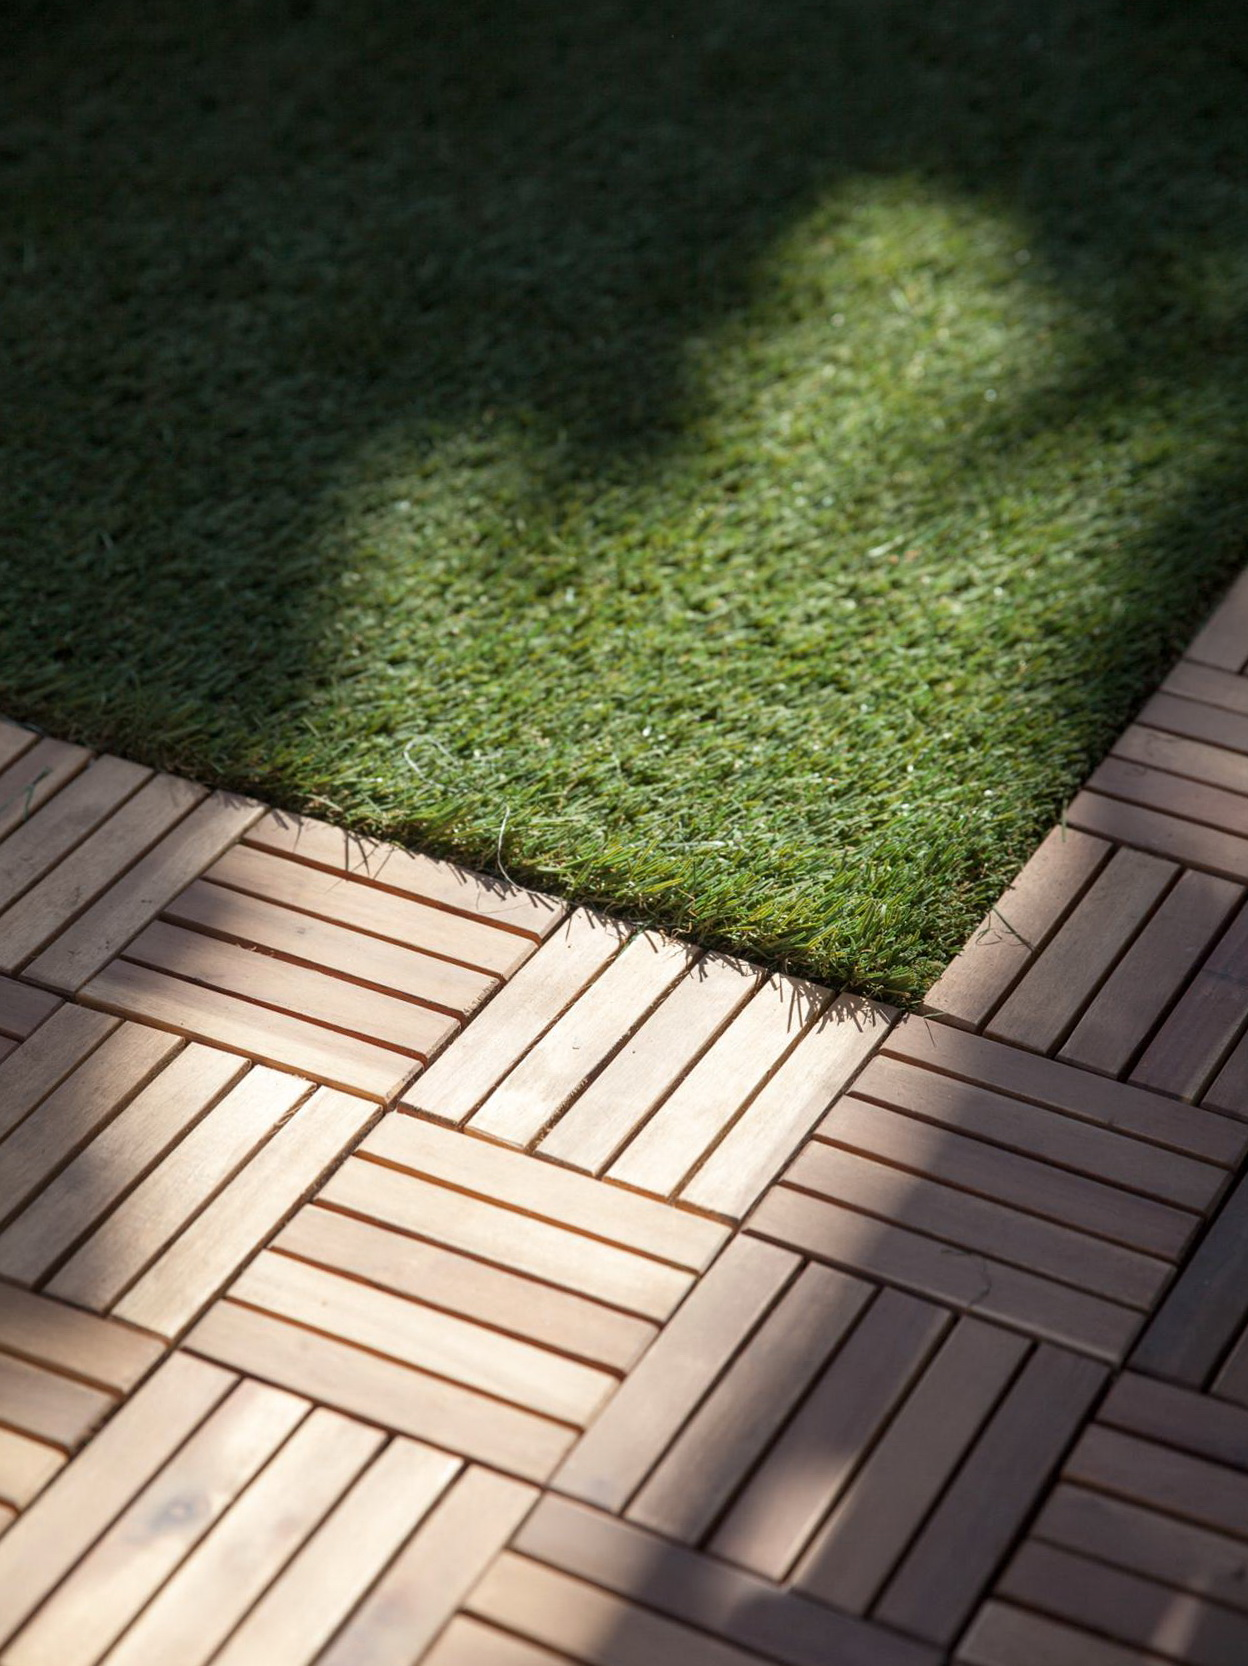 Wood Deck Tiles Over Grass Home Design Ideas